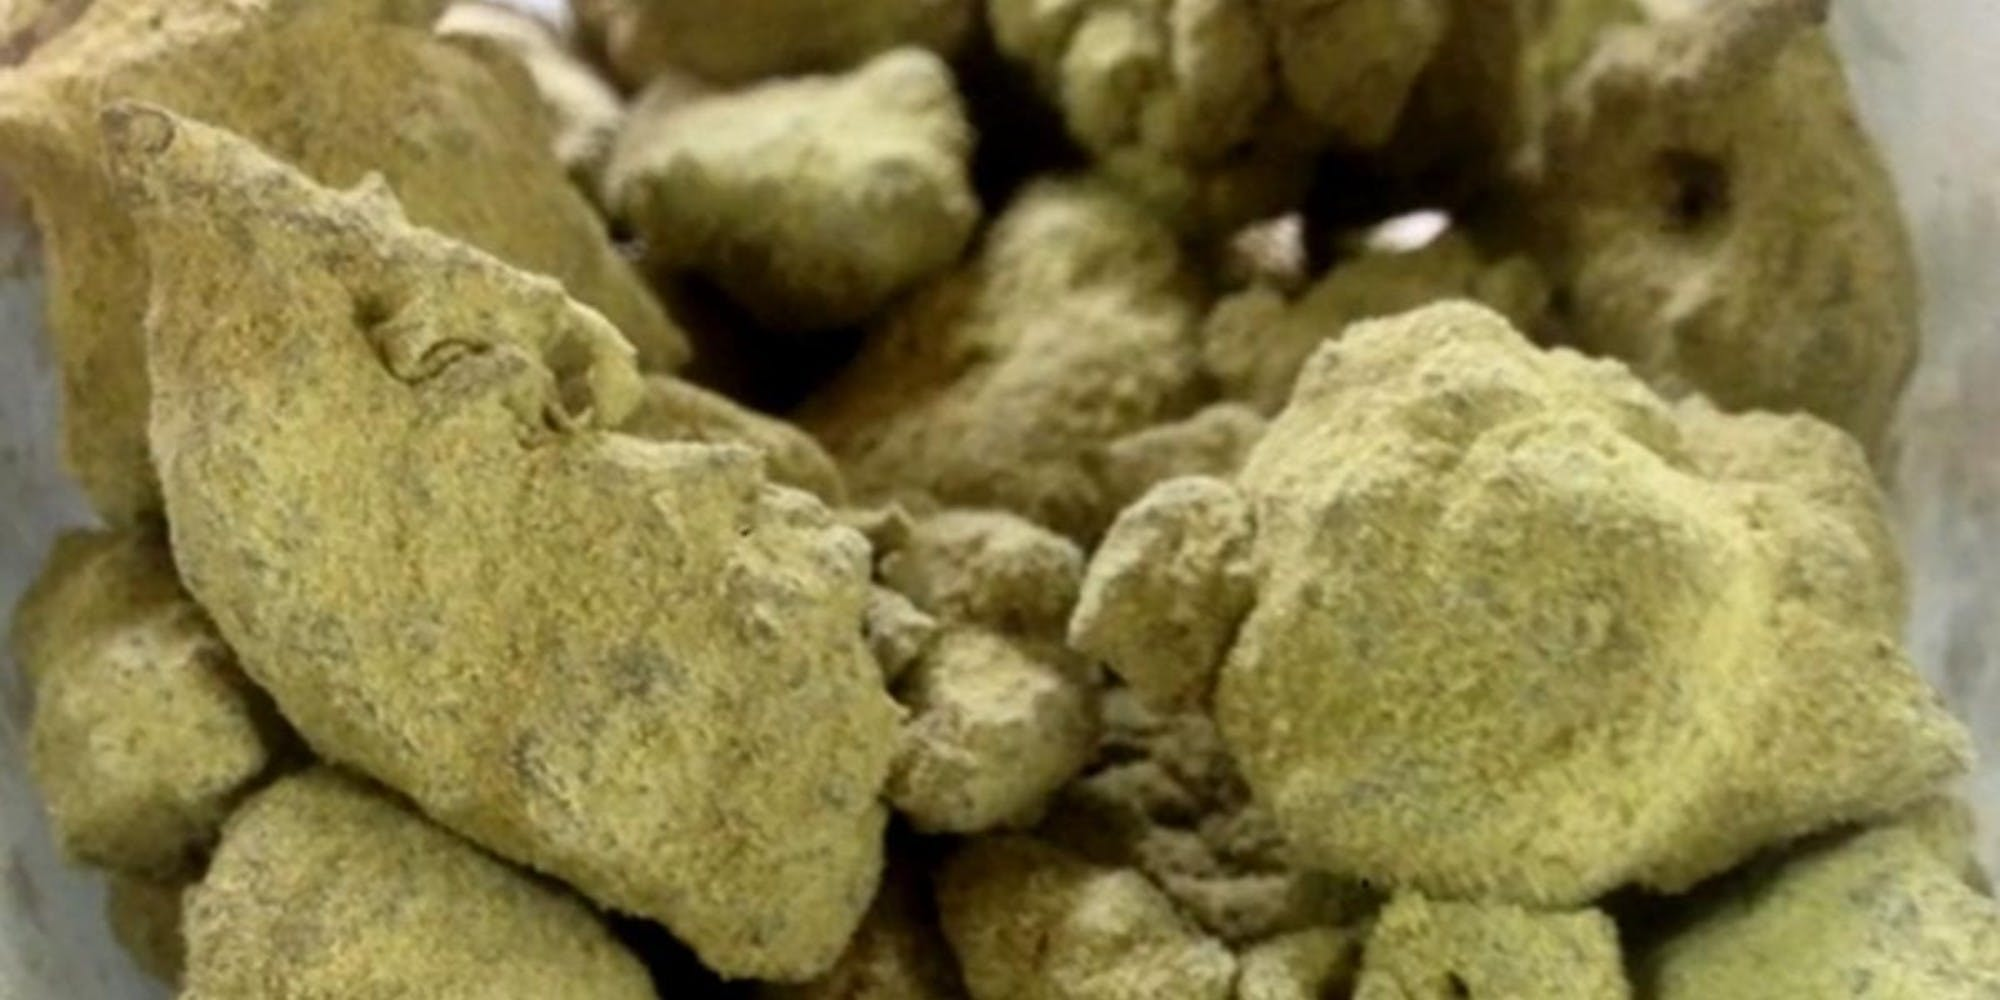 indica-moonrock-21-21-white-fire-og-dipped-in-hash-oil-twice-21-21-and-then-covered-in-strawberry-cough-kief-21